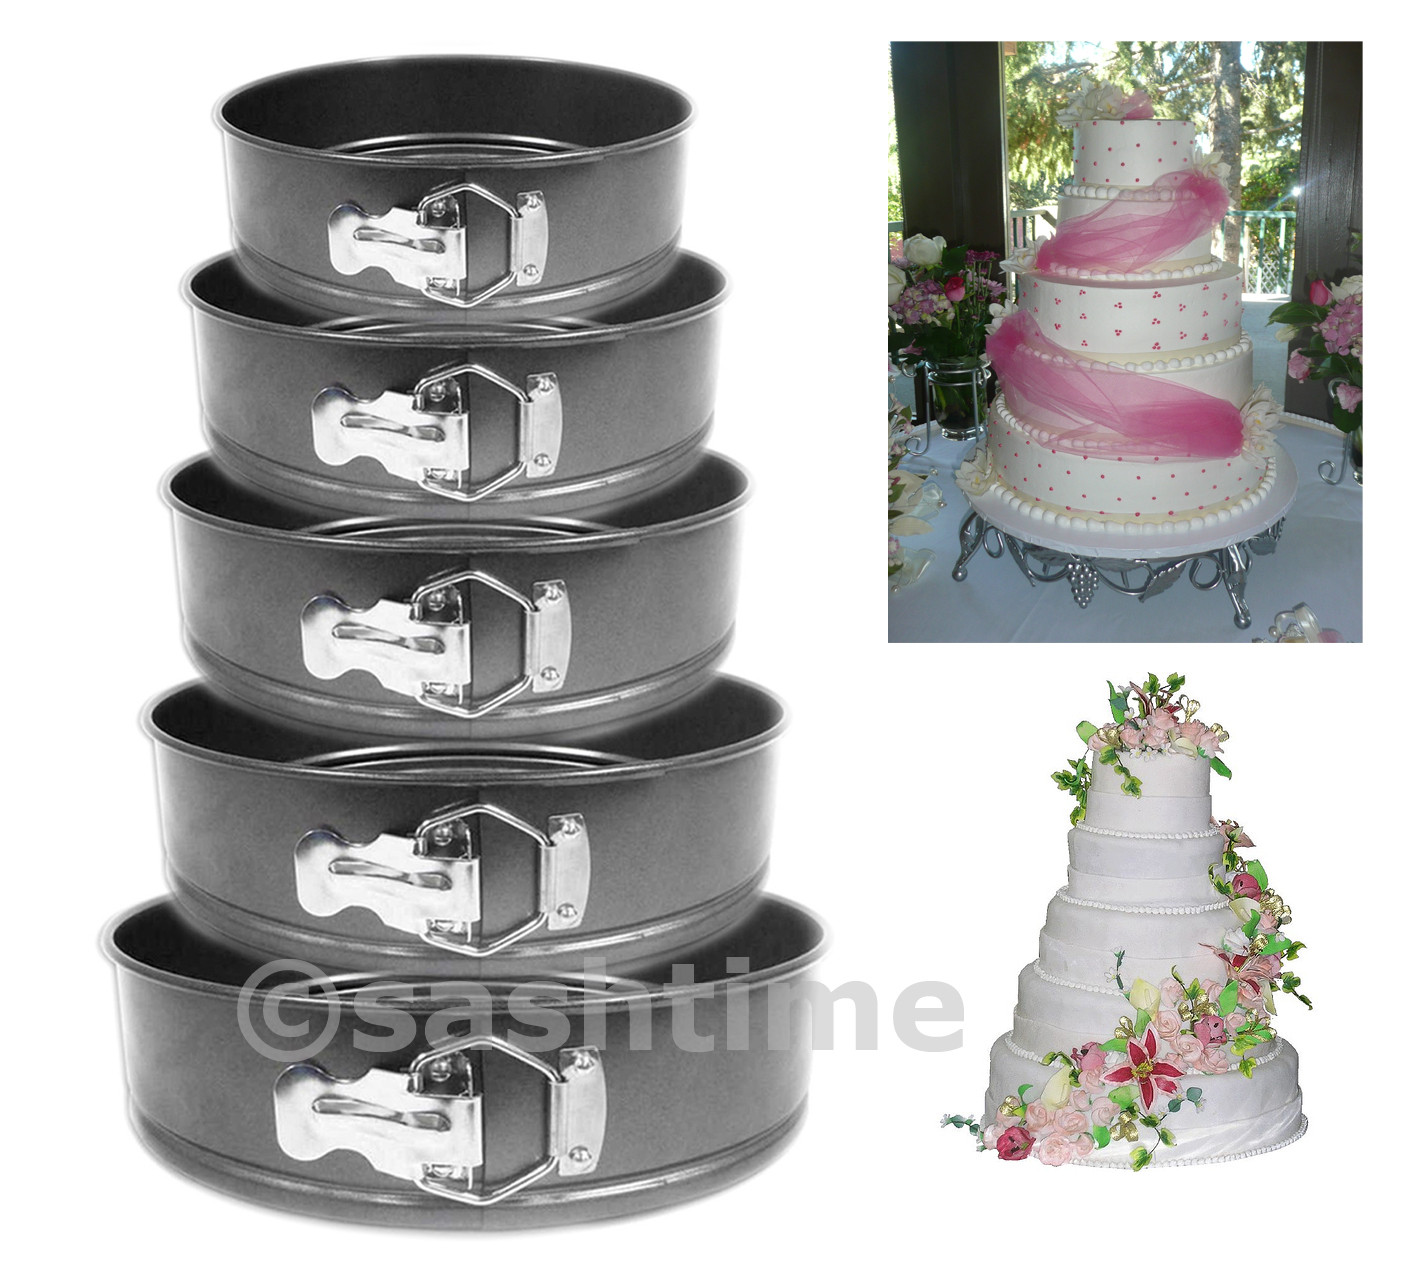 Wedding Cakes Pans  NEW 5PC NON STICK SPRINGFORM CAKE PAN BAKING BAKE ROUND